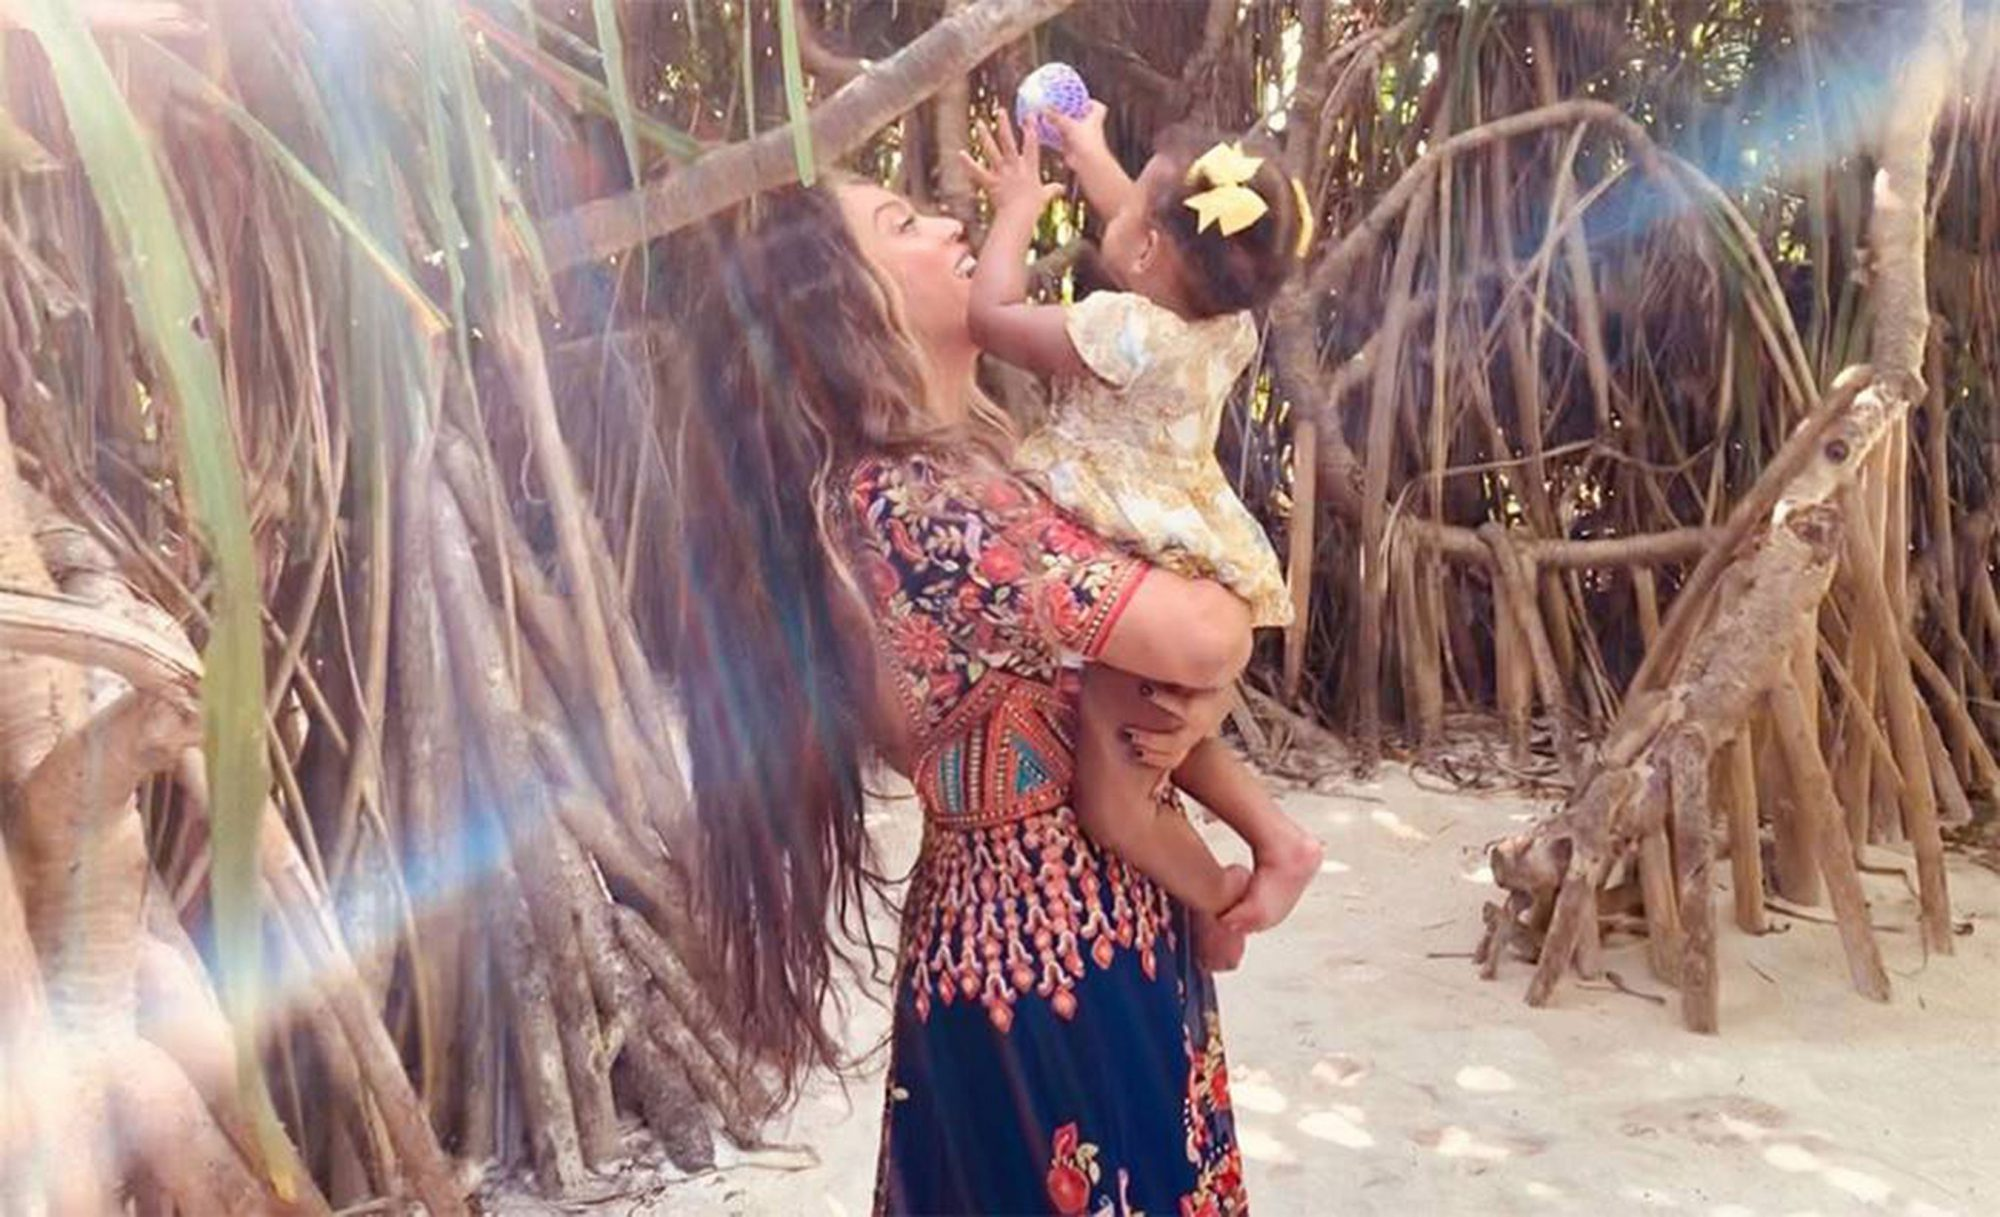 Beyoncé Pulls a Santa Claus, Releases Rare Photos of Twins Rumi and Sir